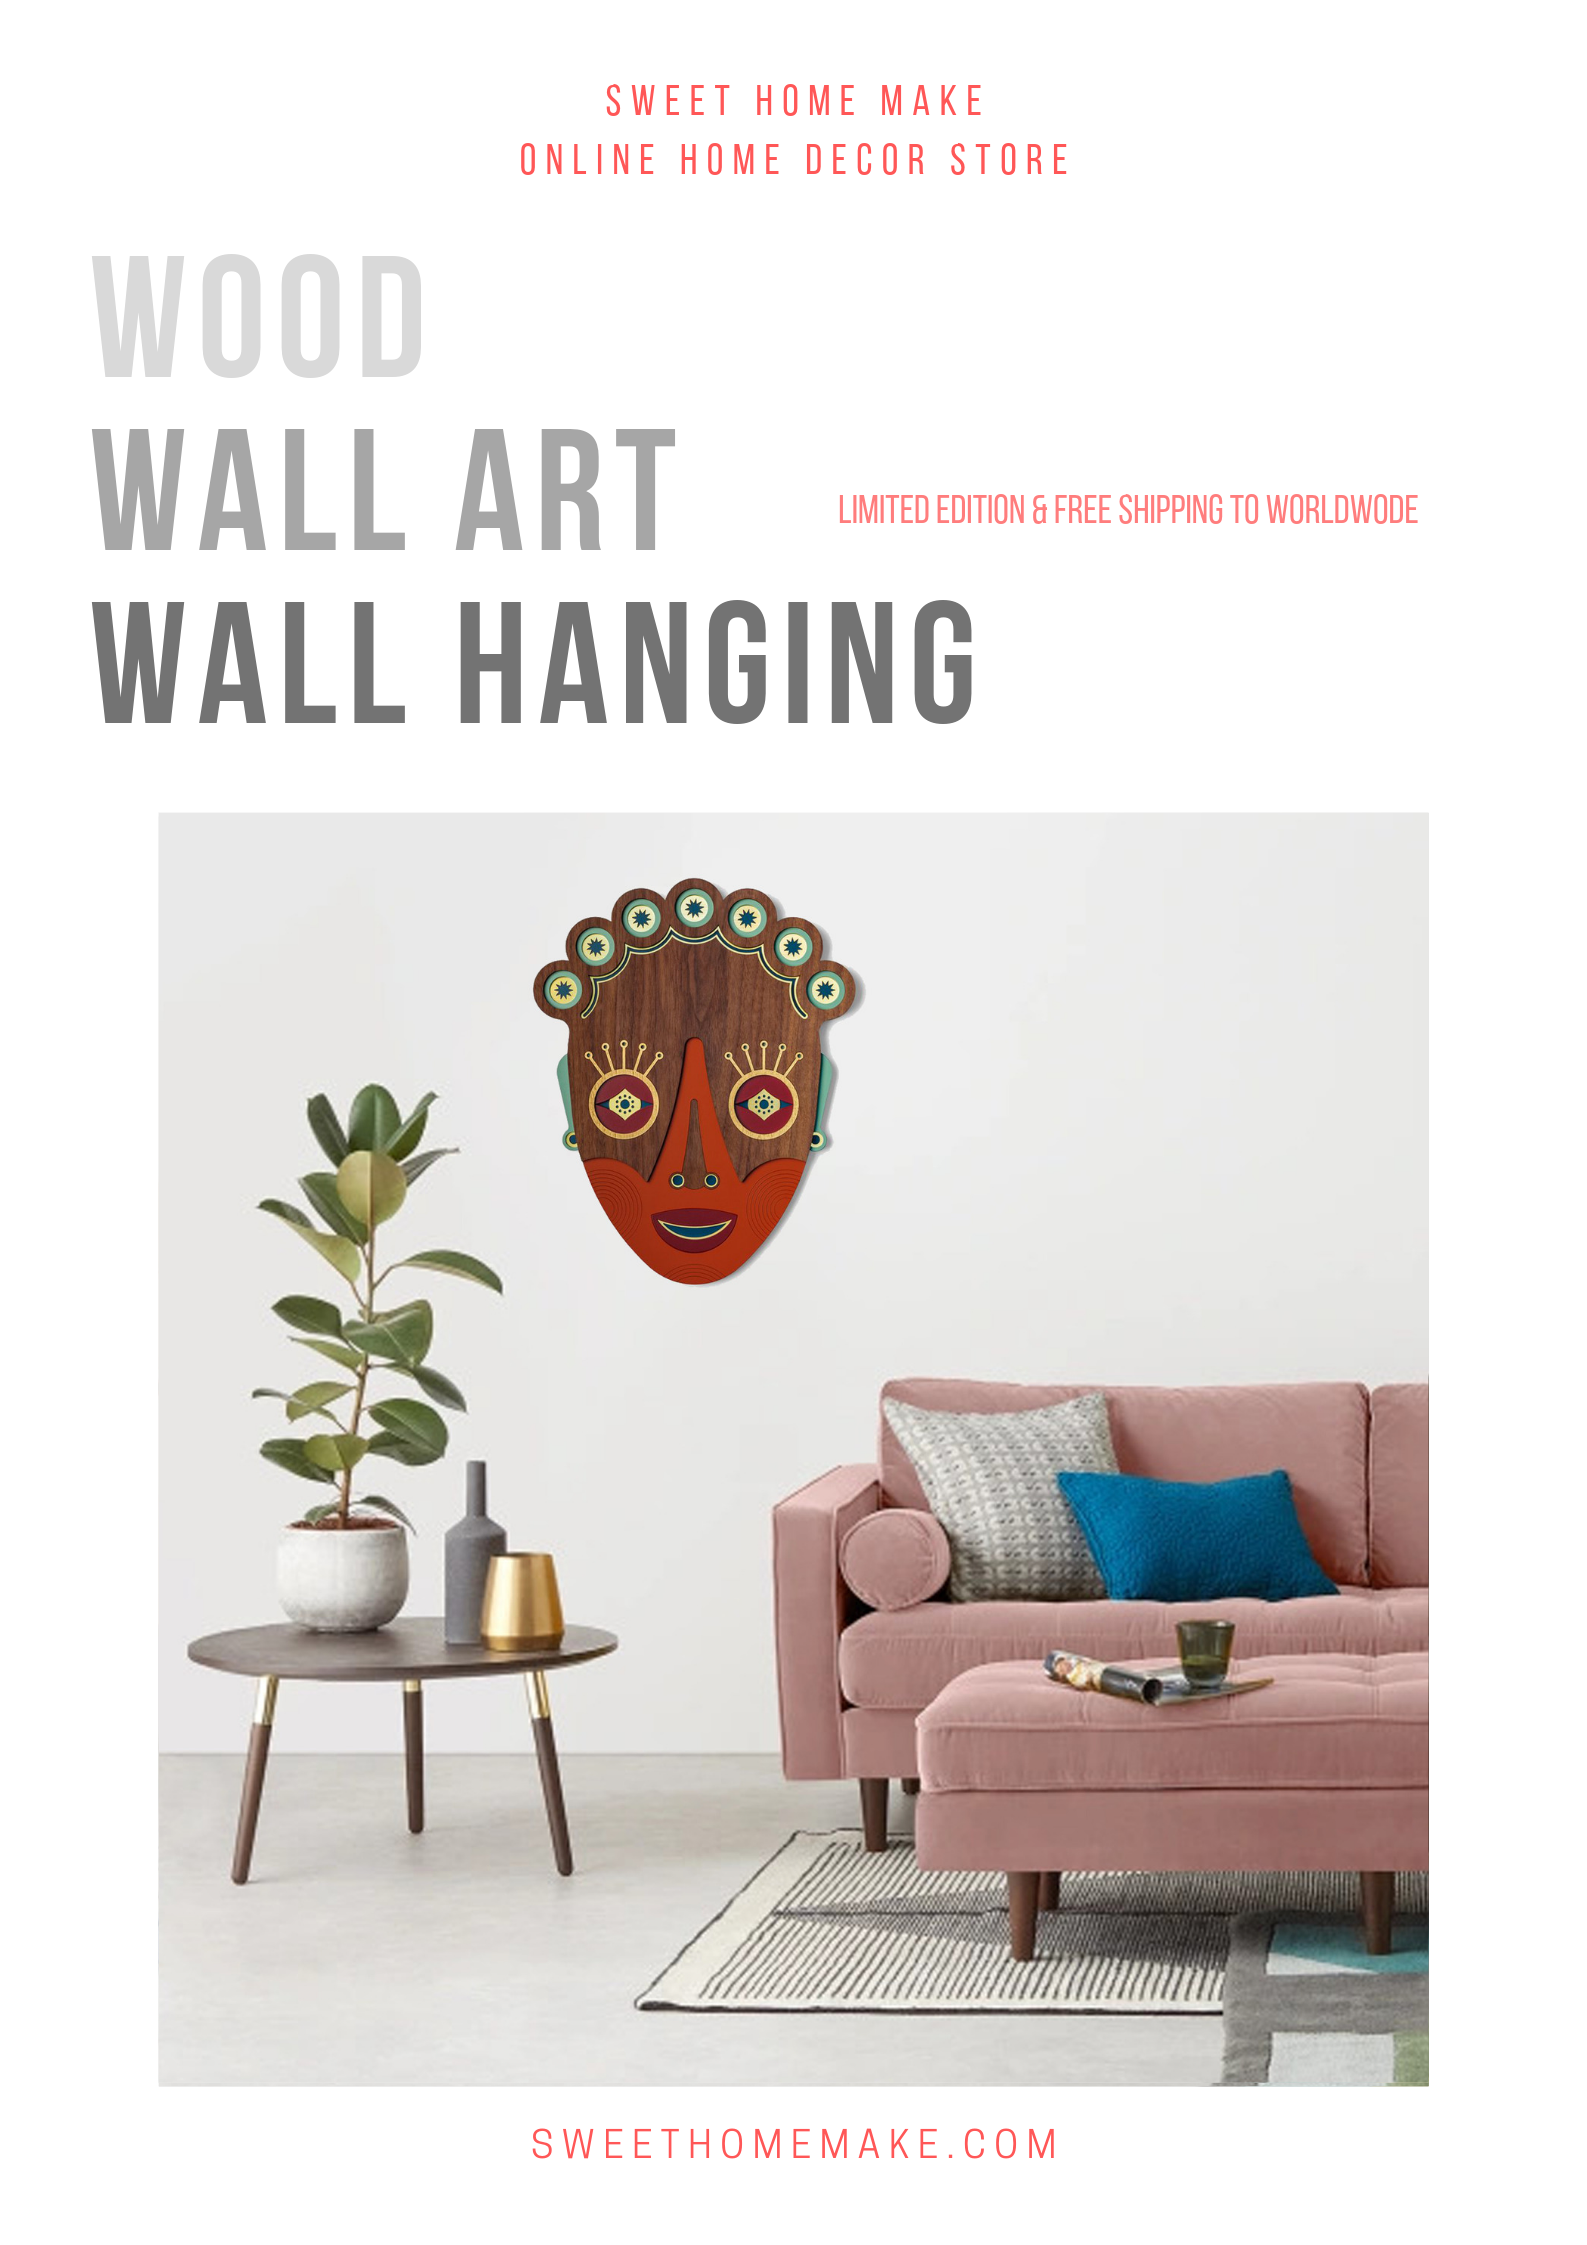 Boho Wall Decor with African Mask Wood Wall Art